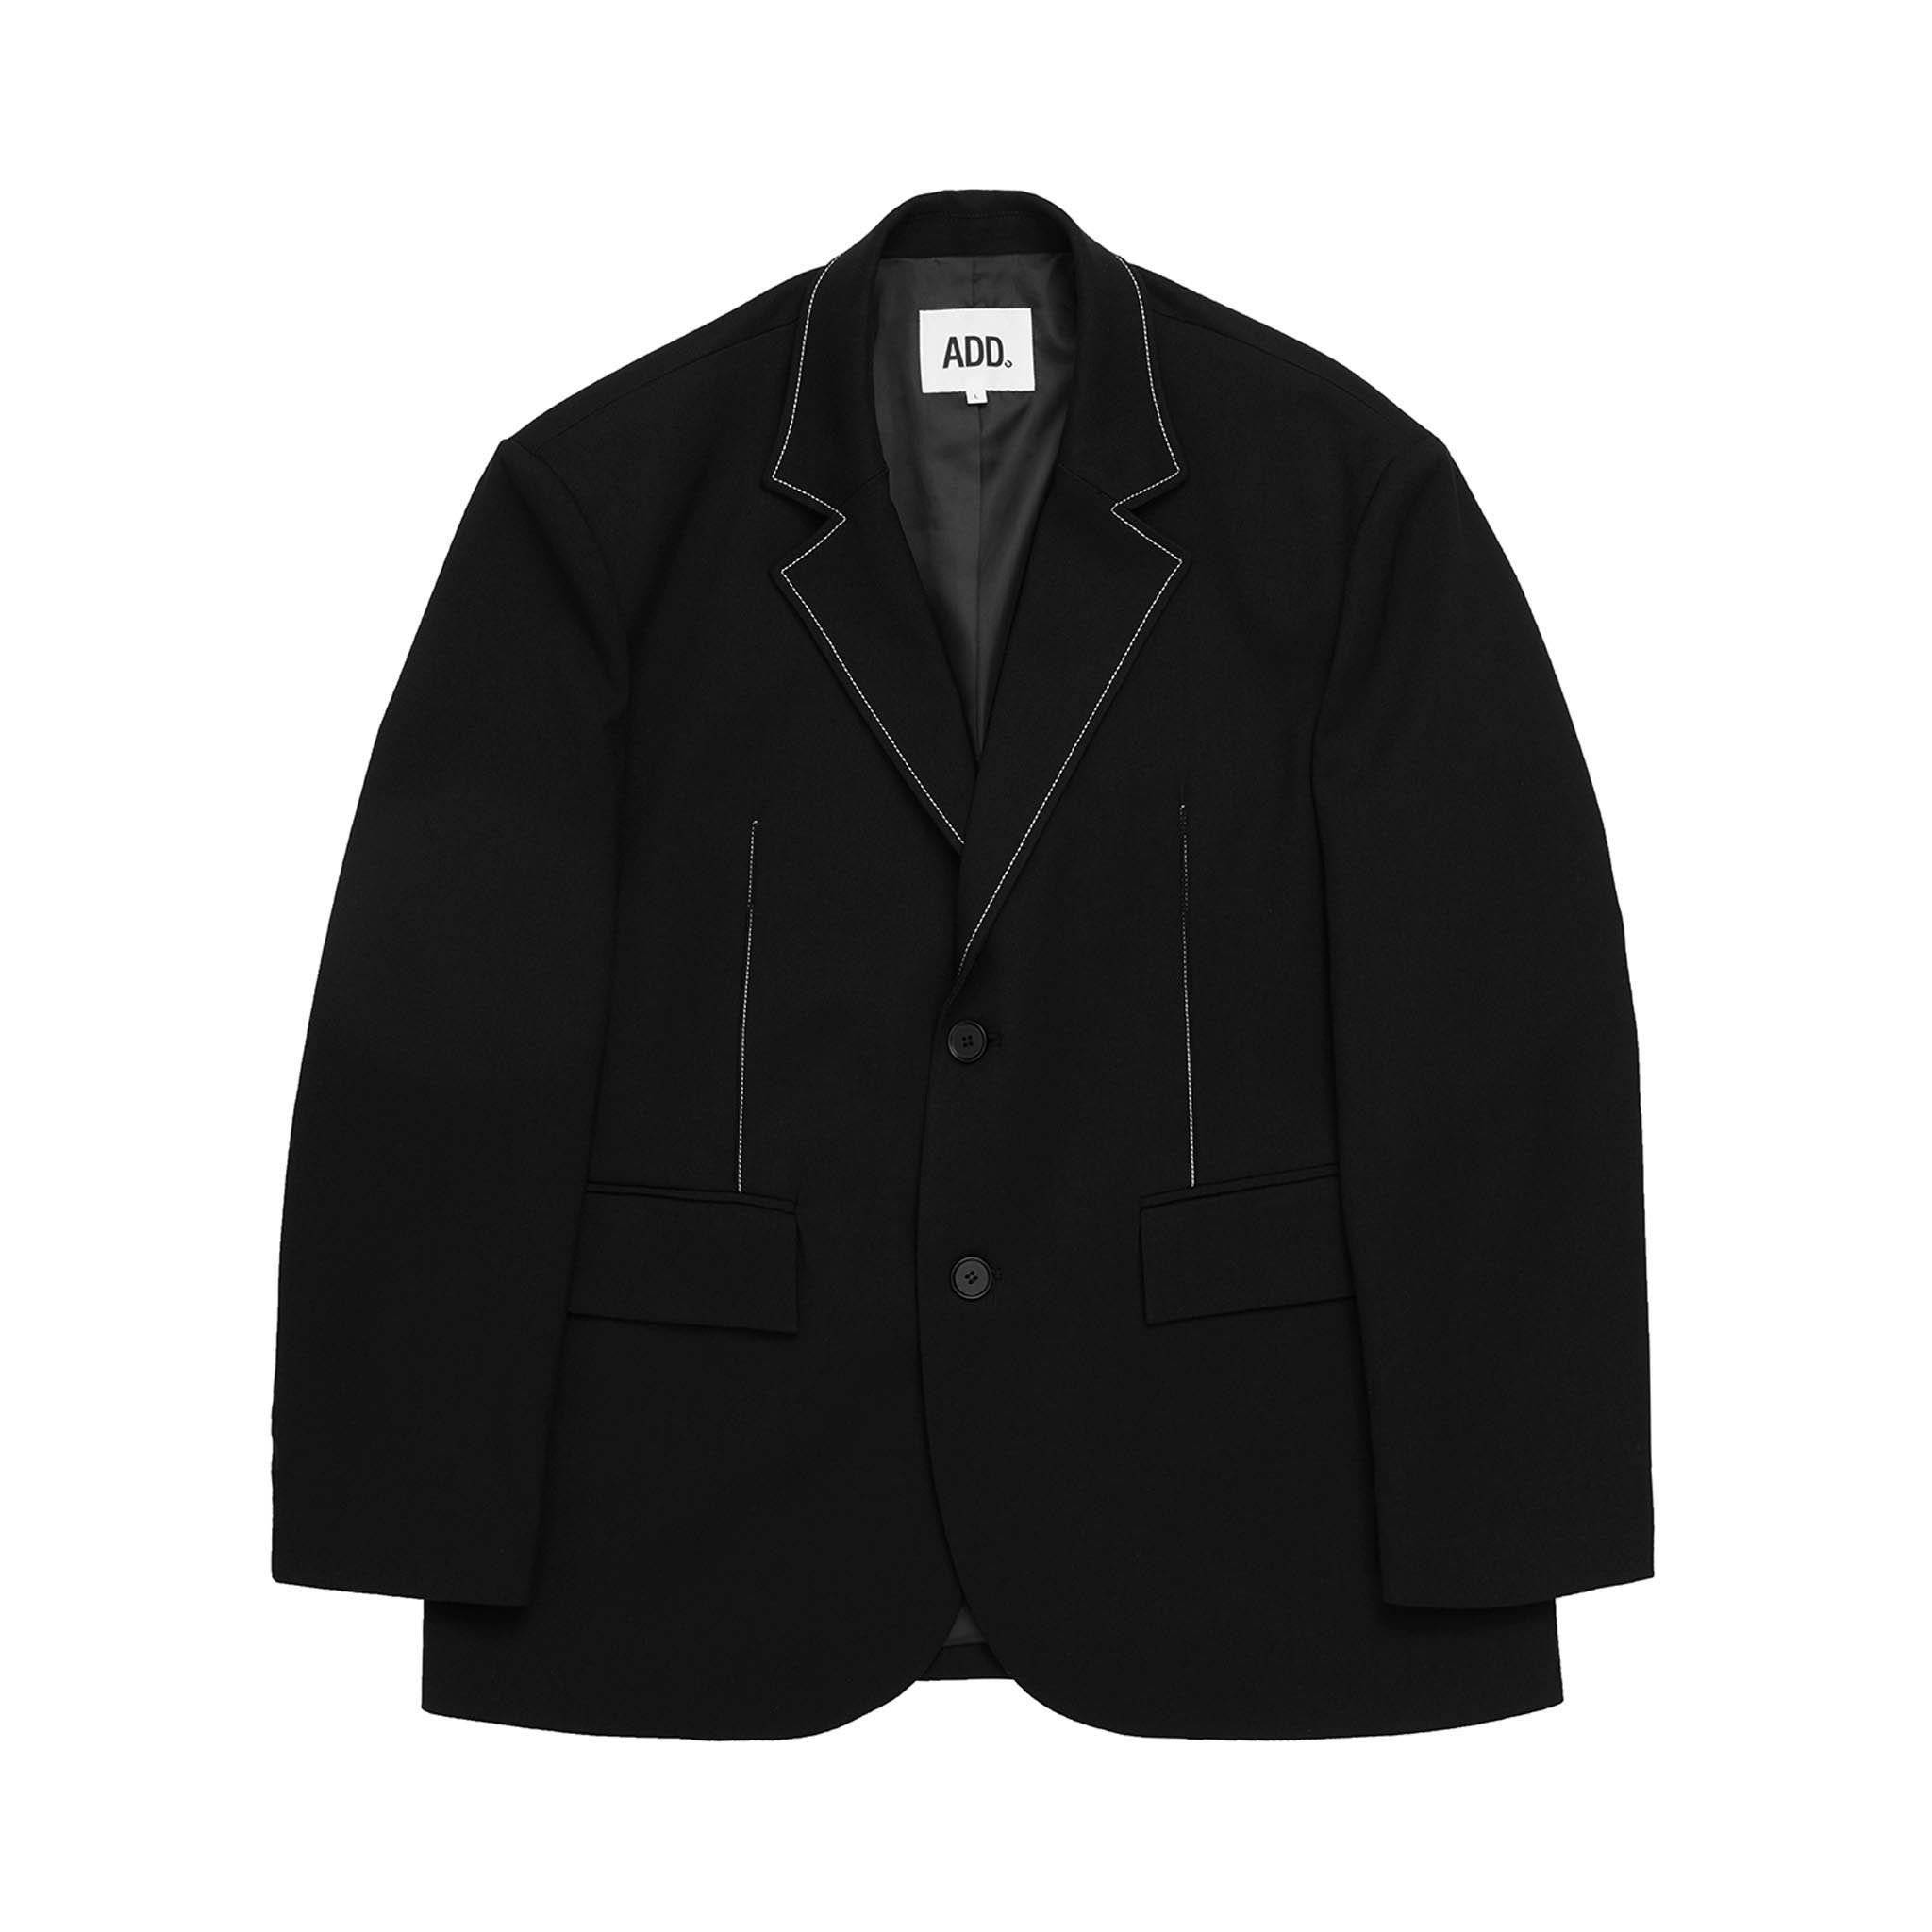 ADD Contrast Stitch Blazer Black